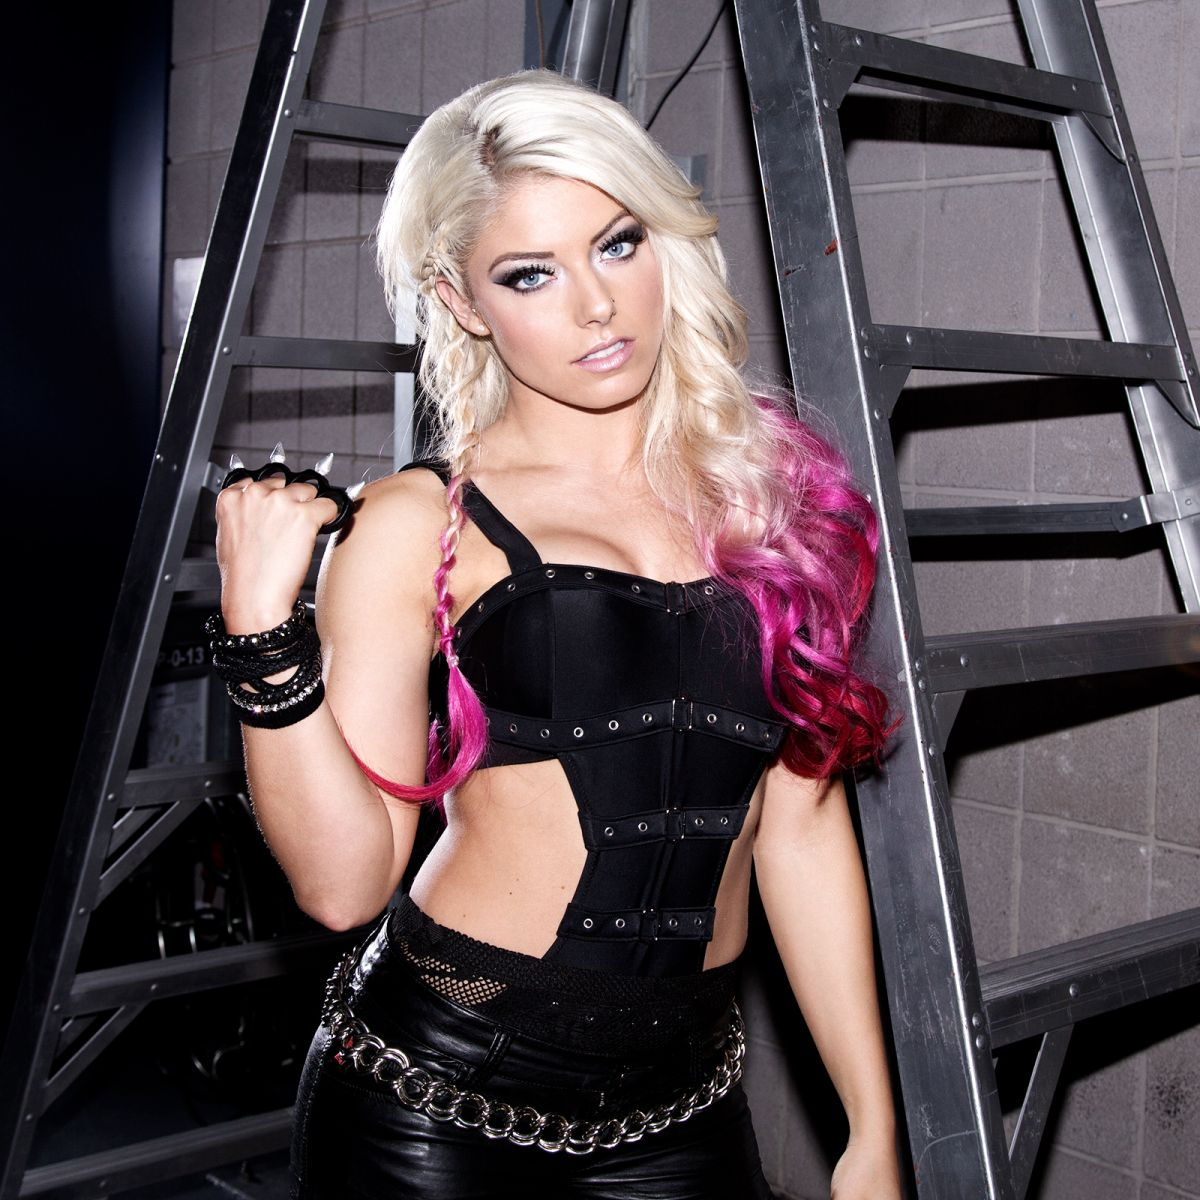 Alexa Bliss Hot Photoshoot